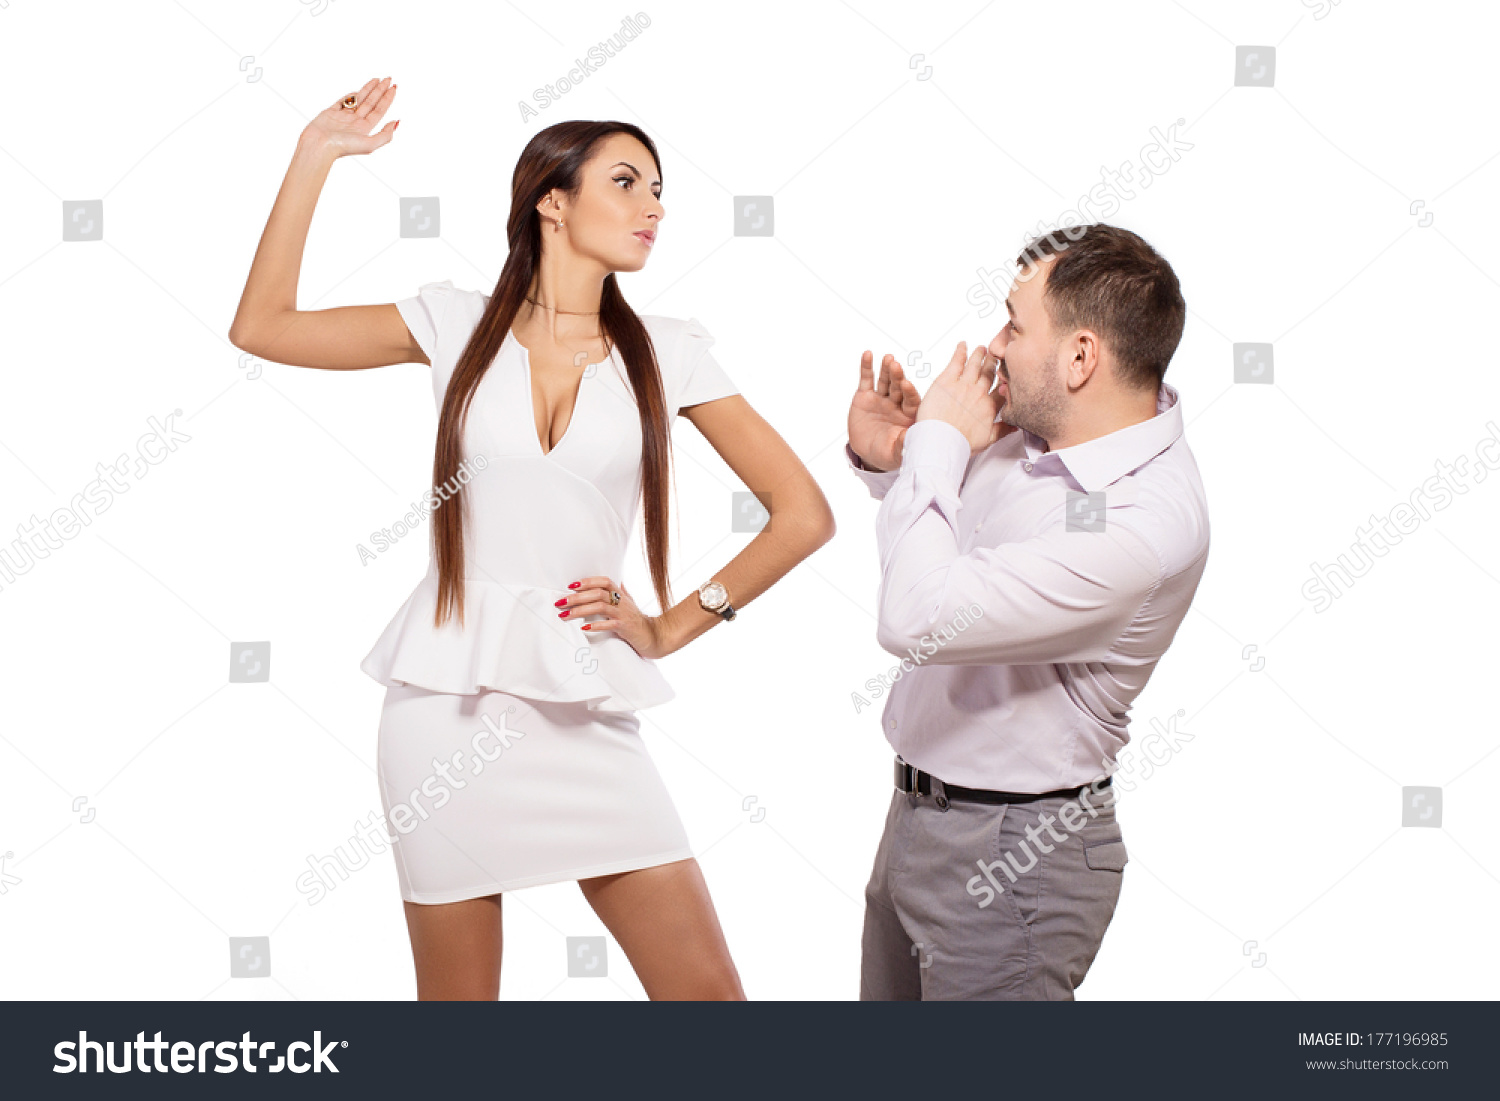 woman boss in relationship with the gym